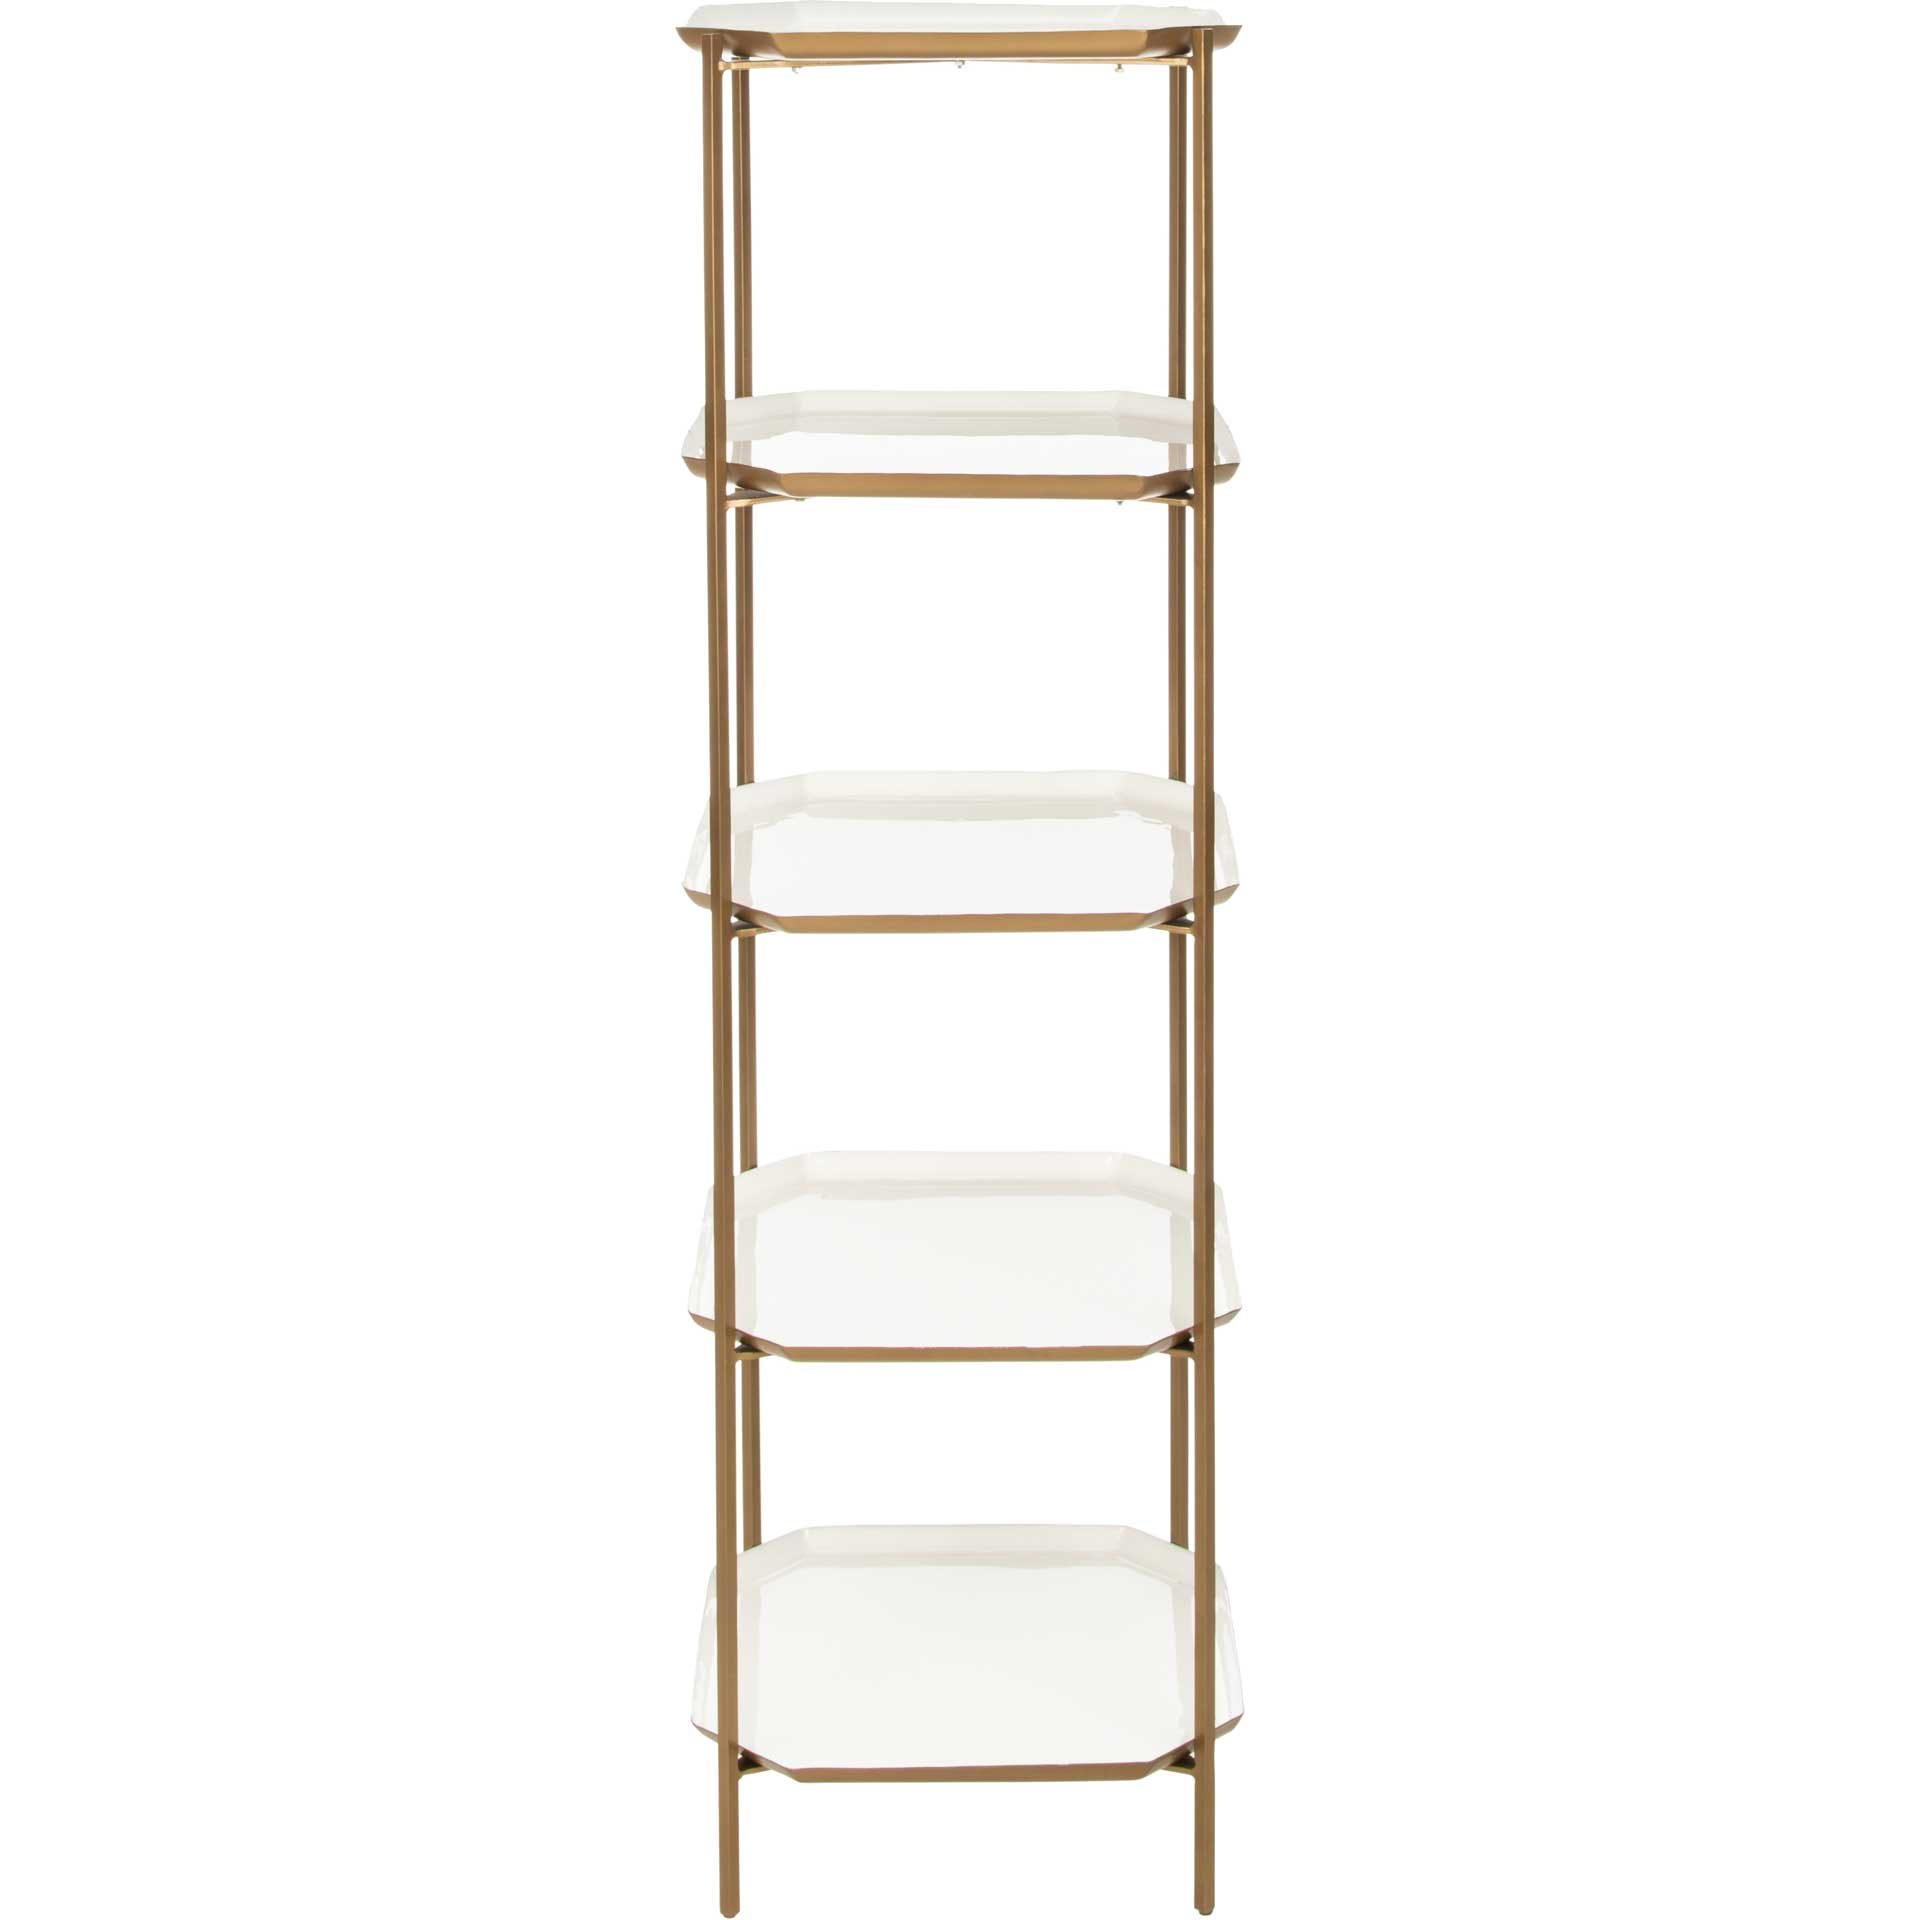 Sybella 5 Tier Etagere White/Brass